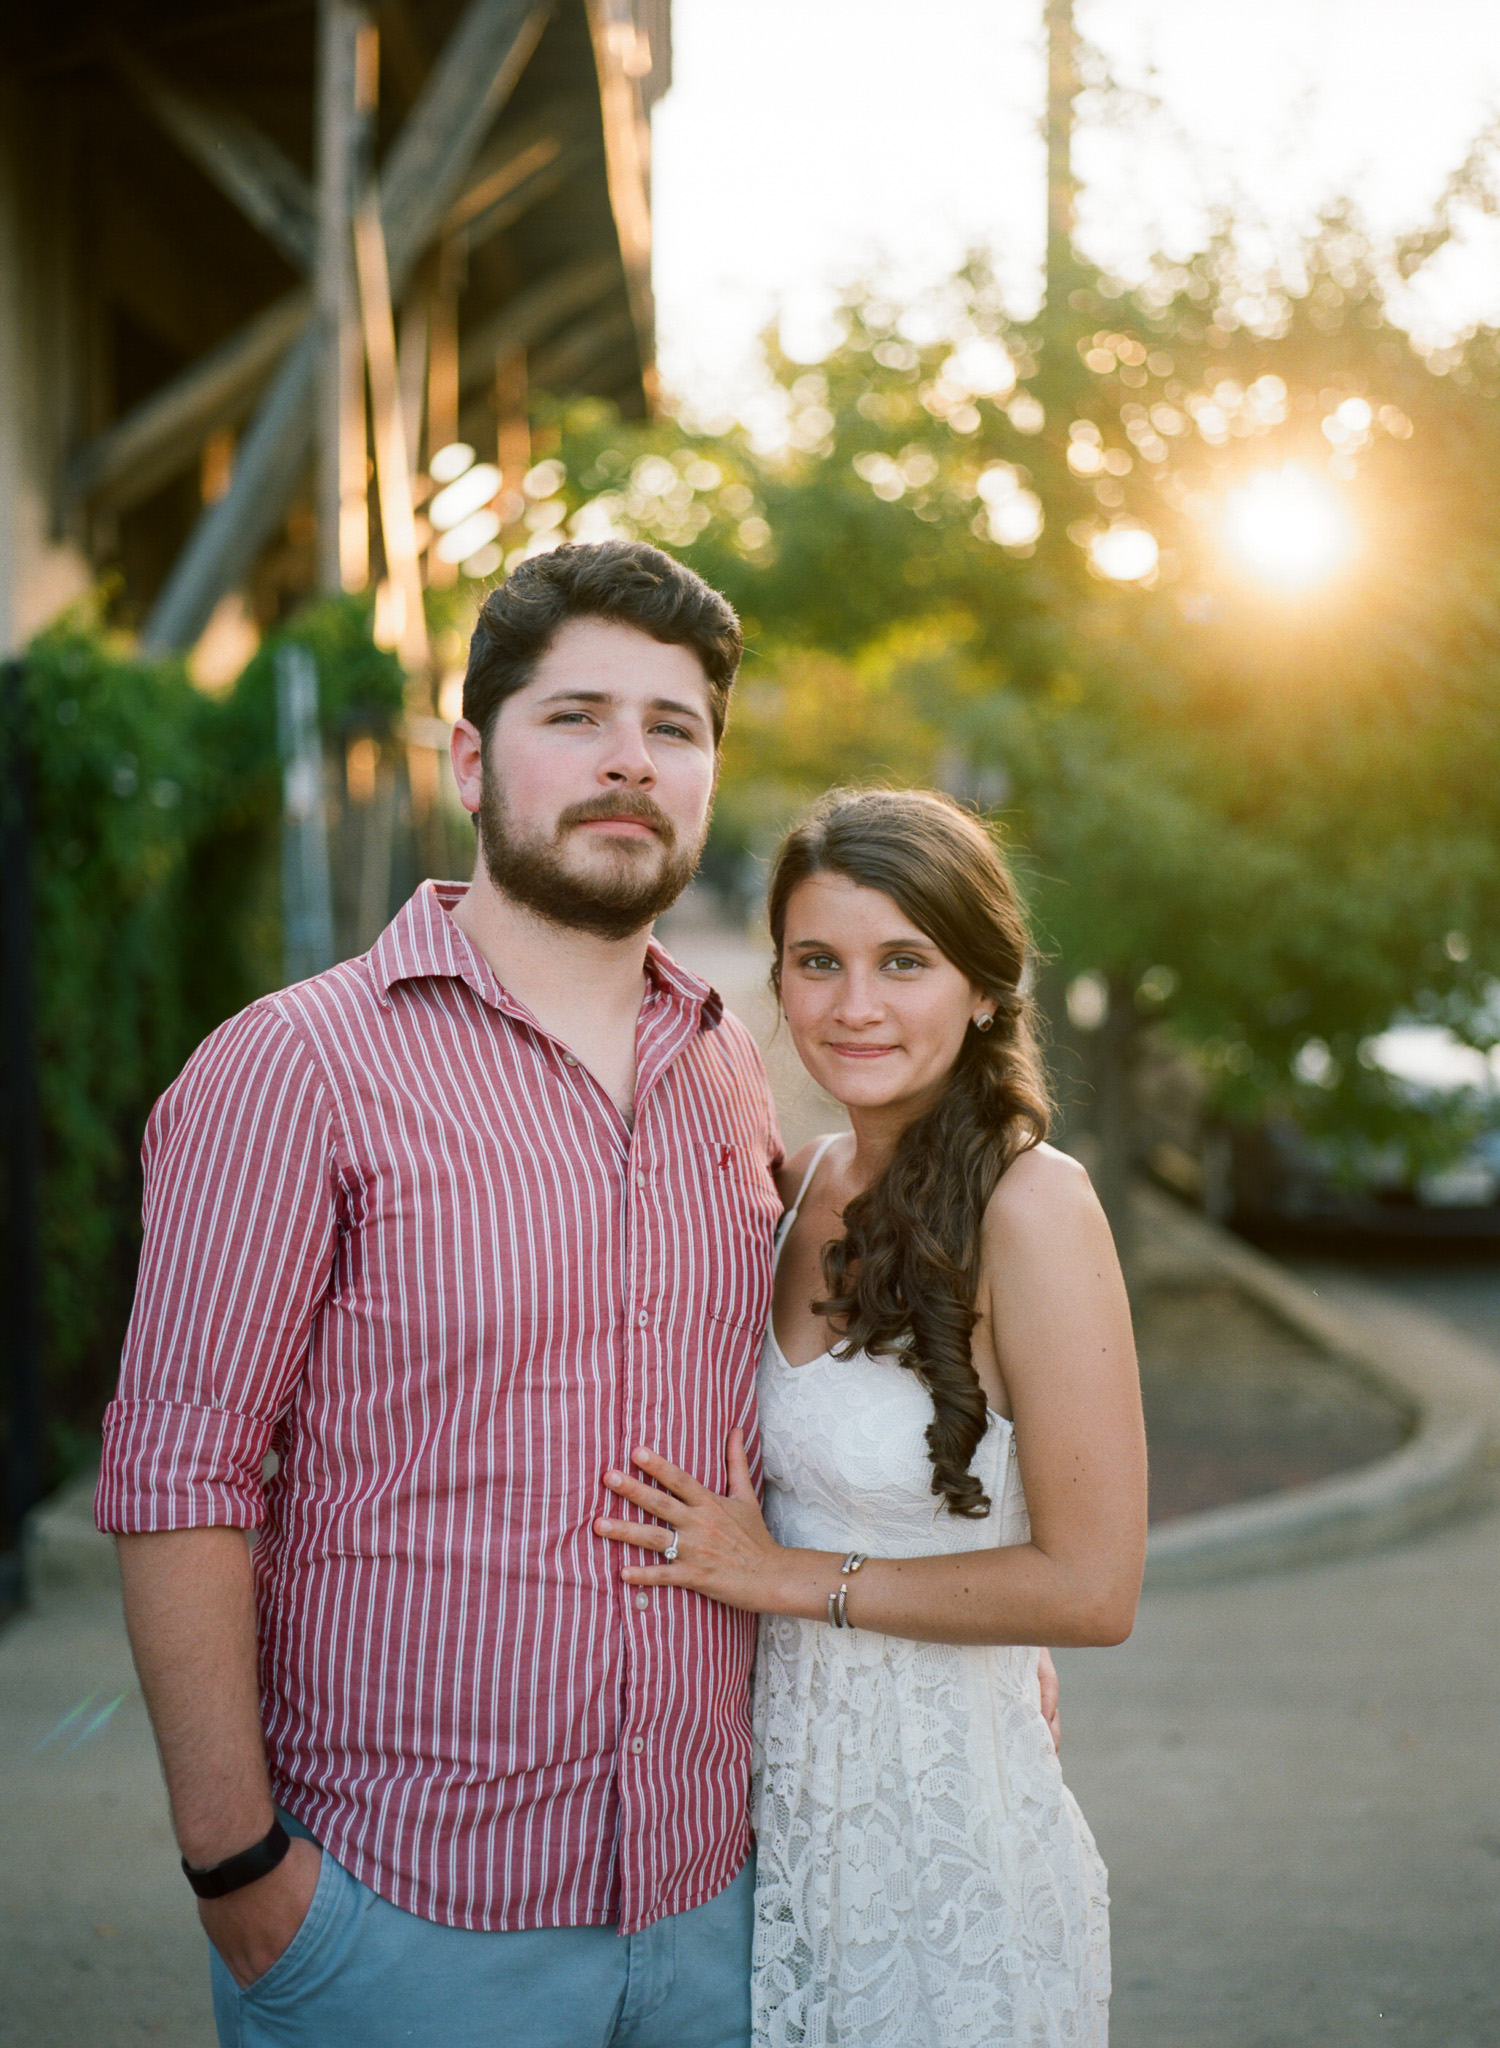 Old-Town-Alexandria-Engagement-Photography-25.jpg